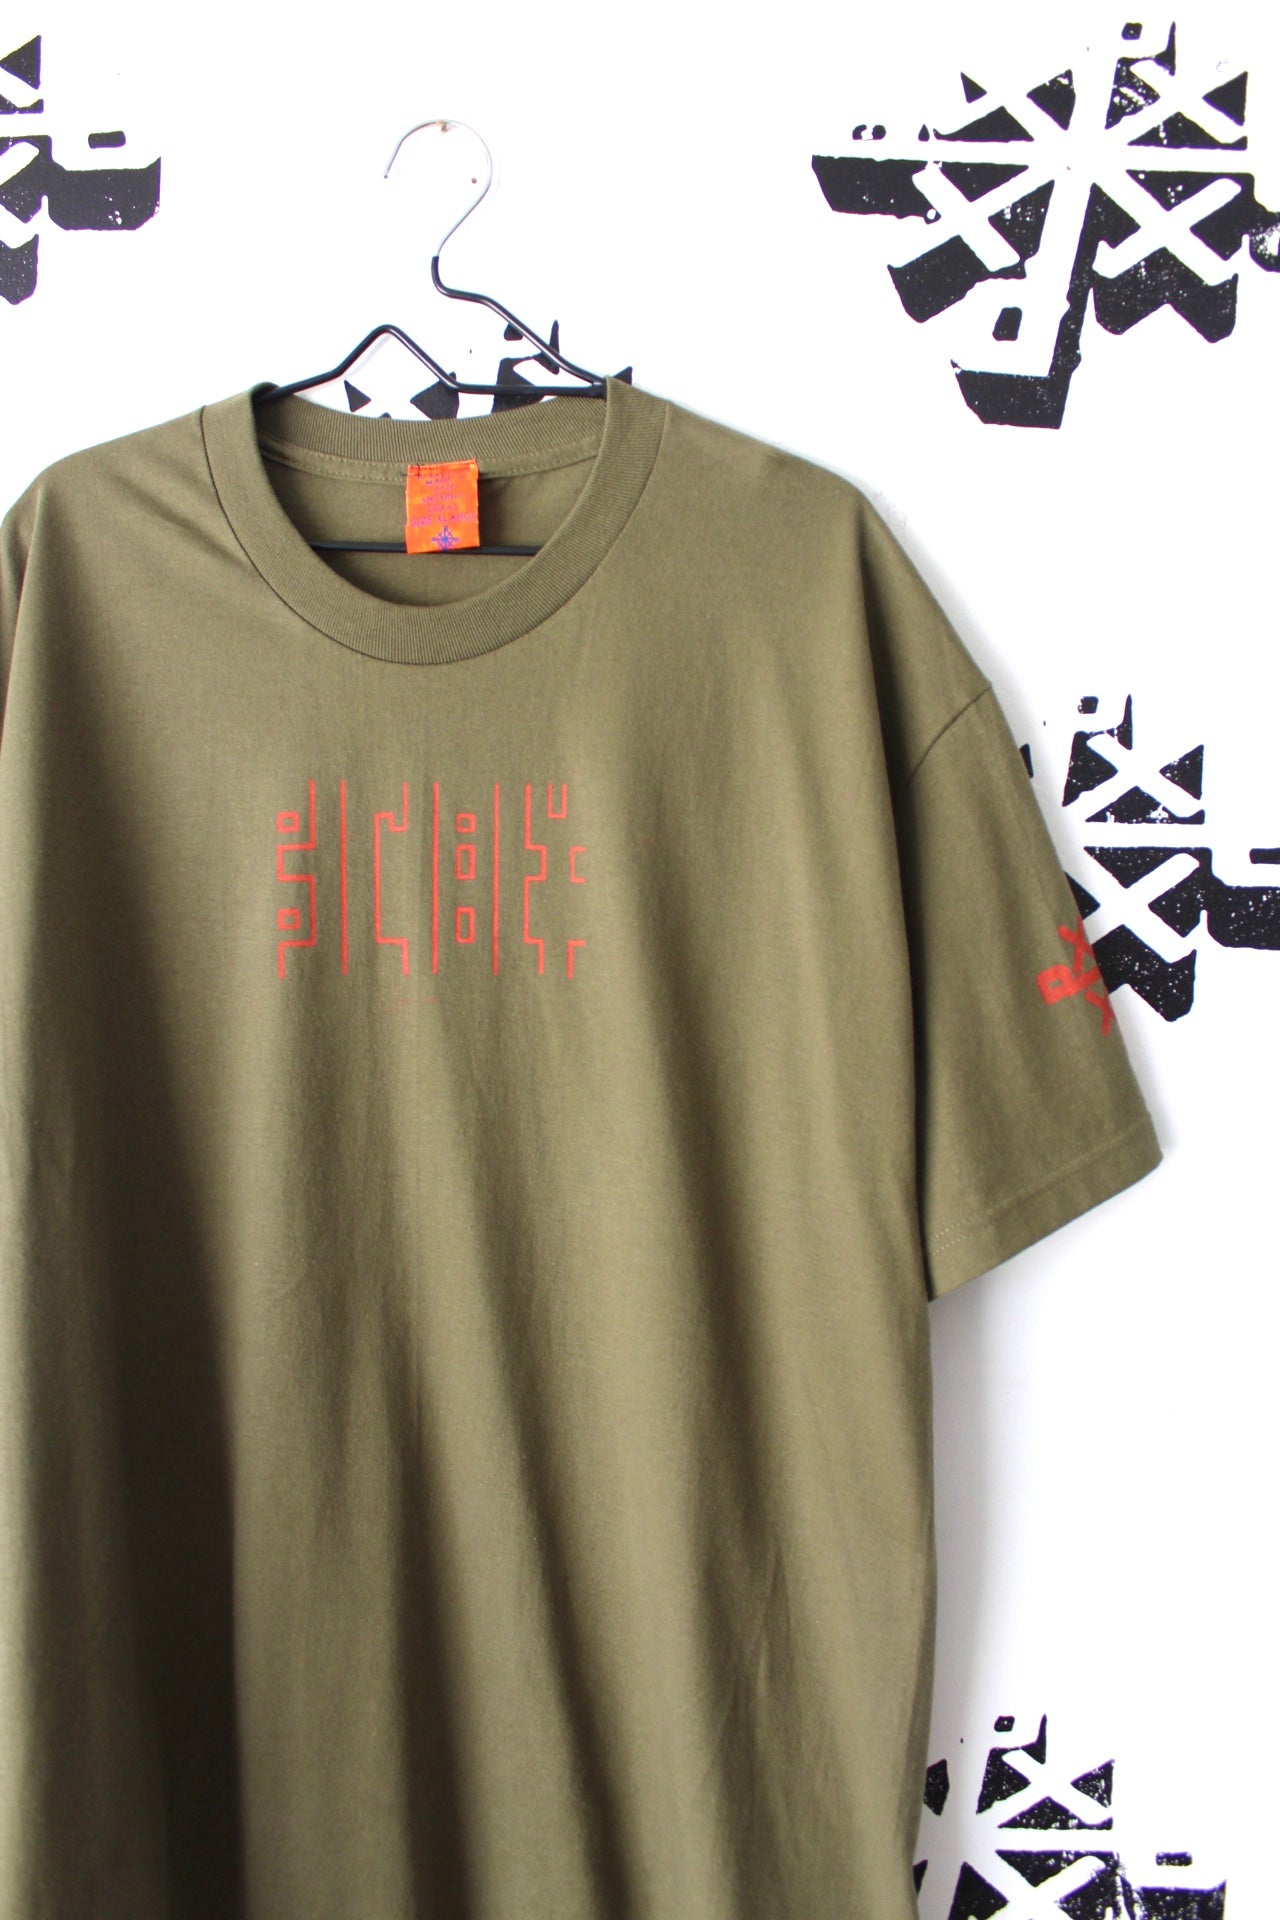 Image of straighten up tee in army green